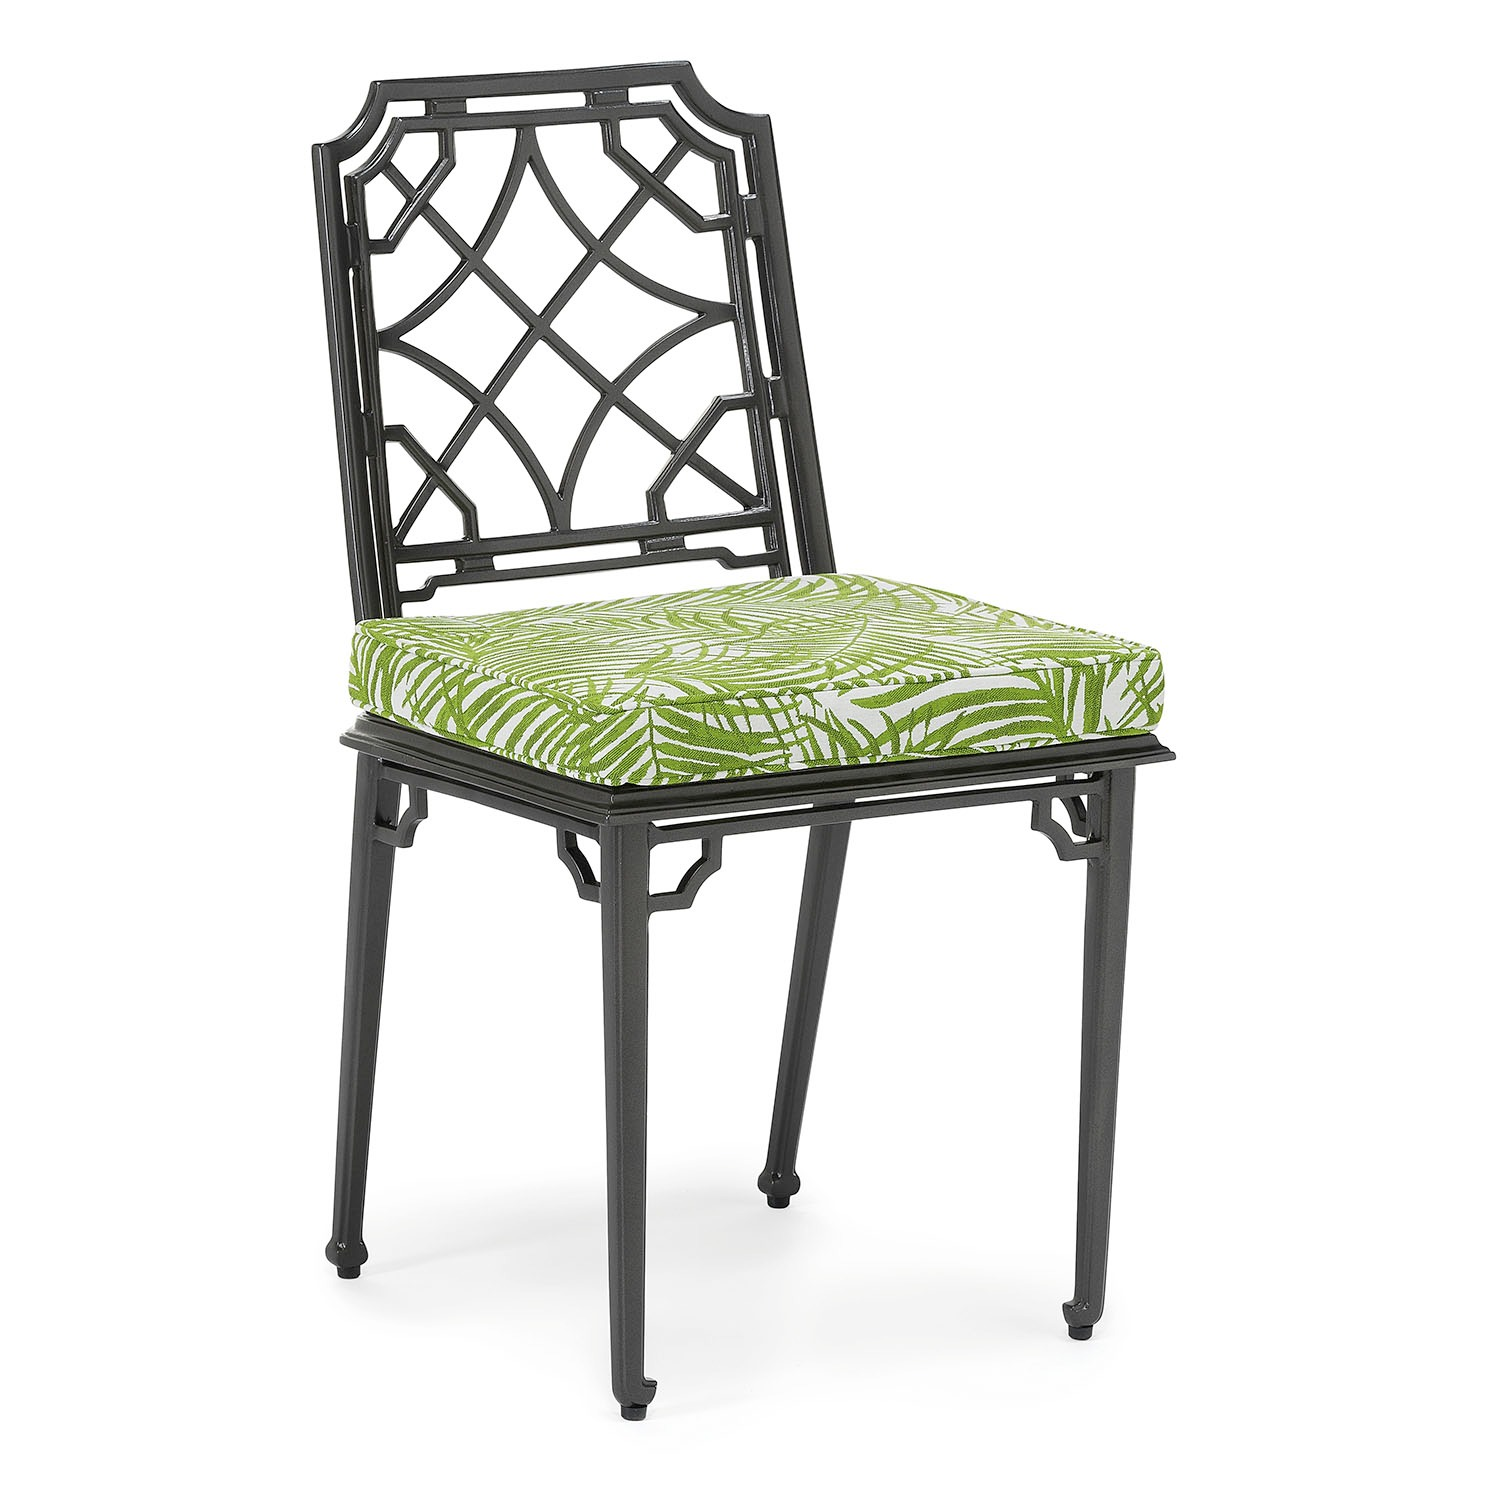 Rissington metal outdoor dining chair with enhanced fabric seat cushion